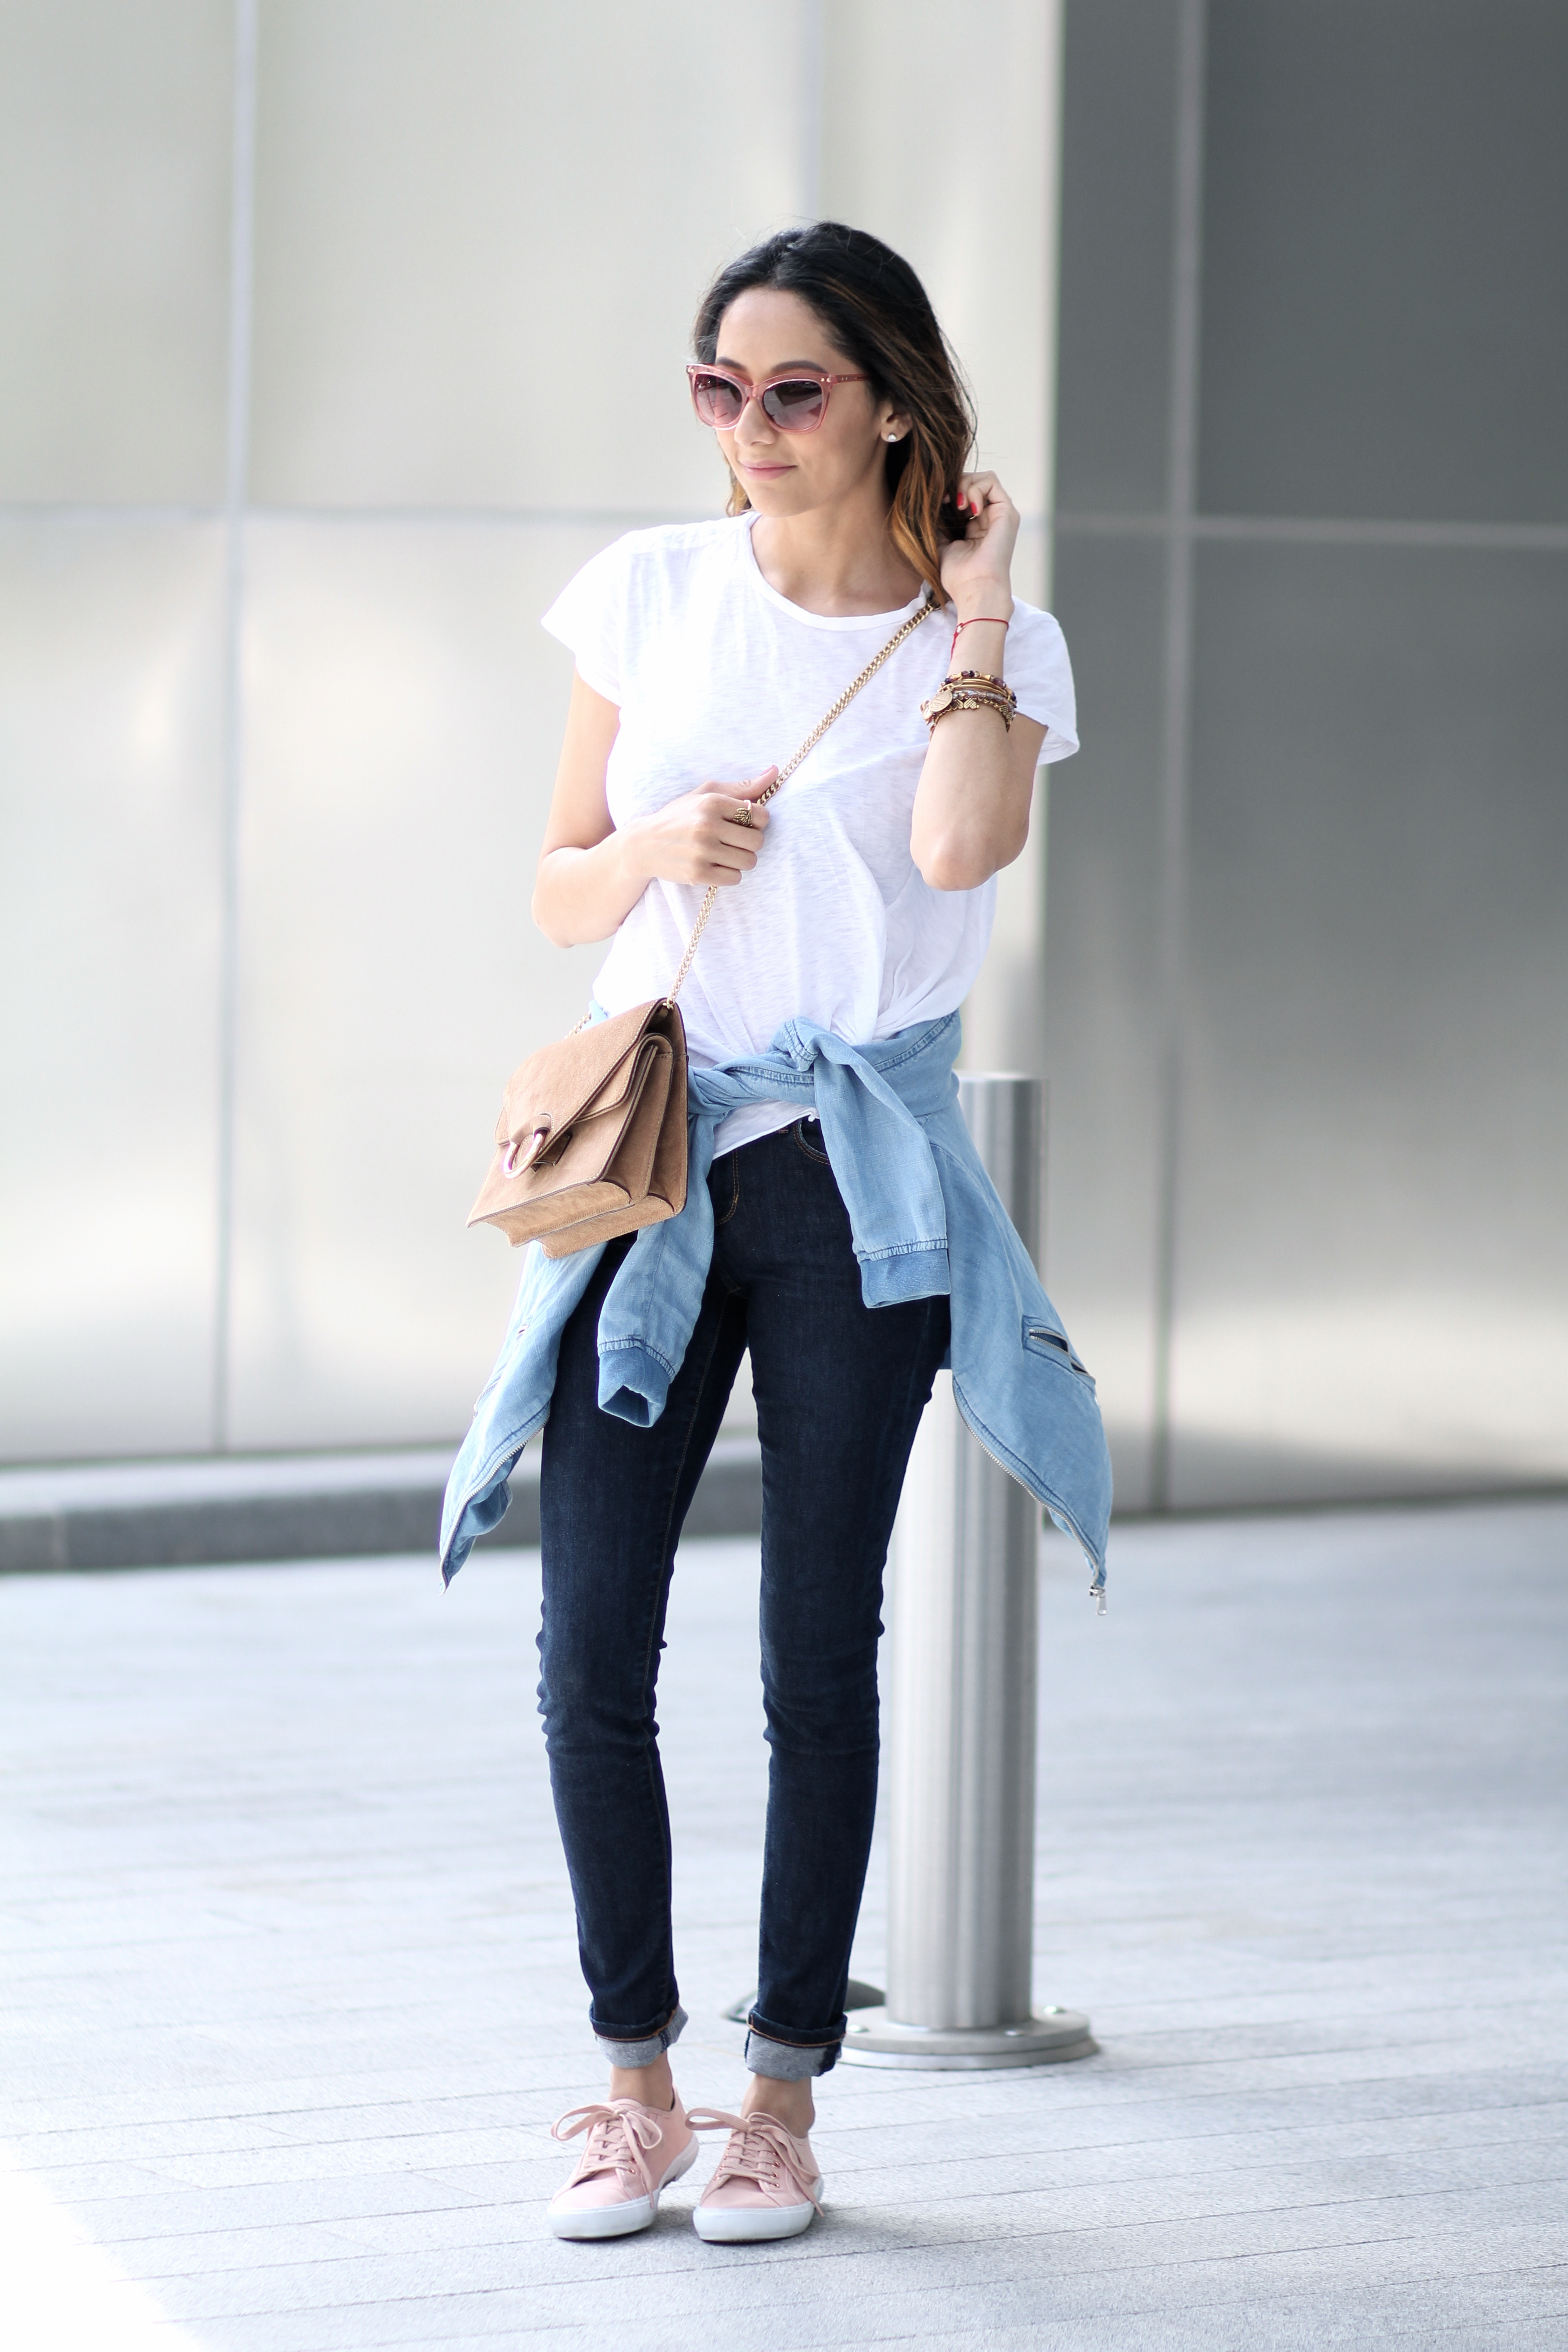 how to style the perfect casual Friday outfit with jeans and a white tee